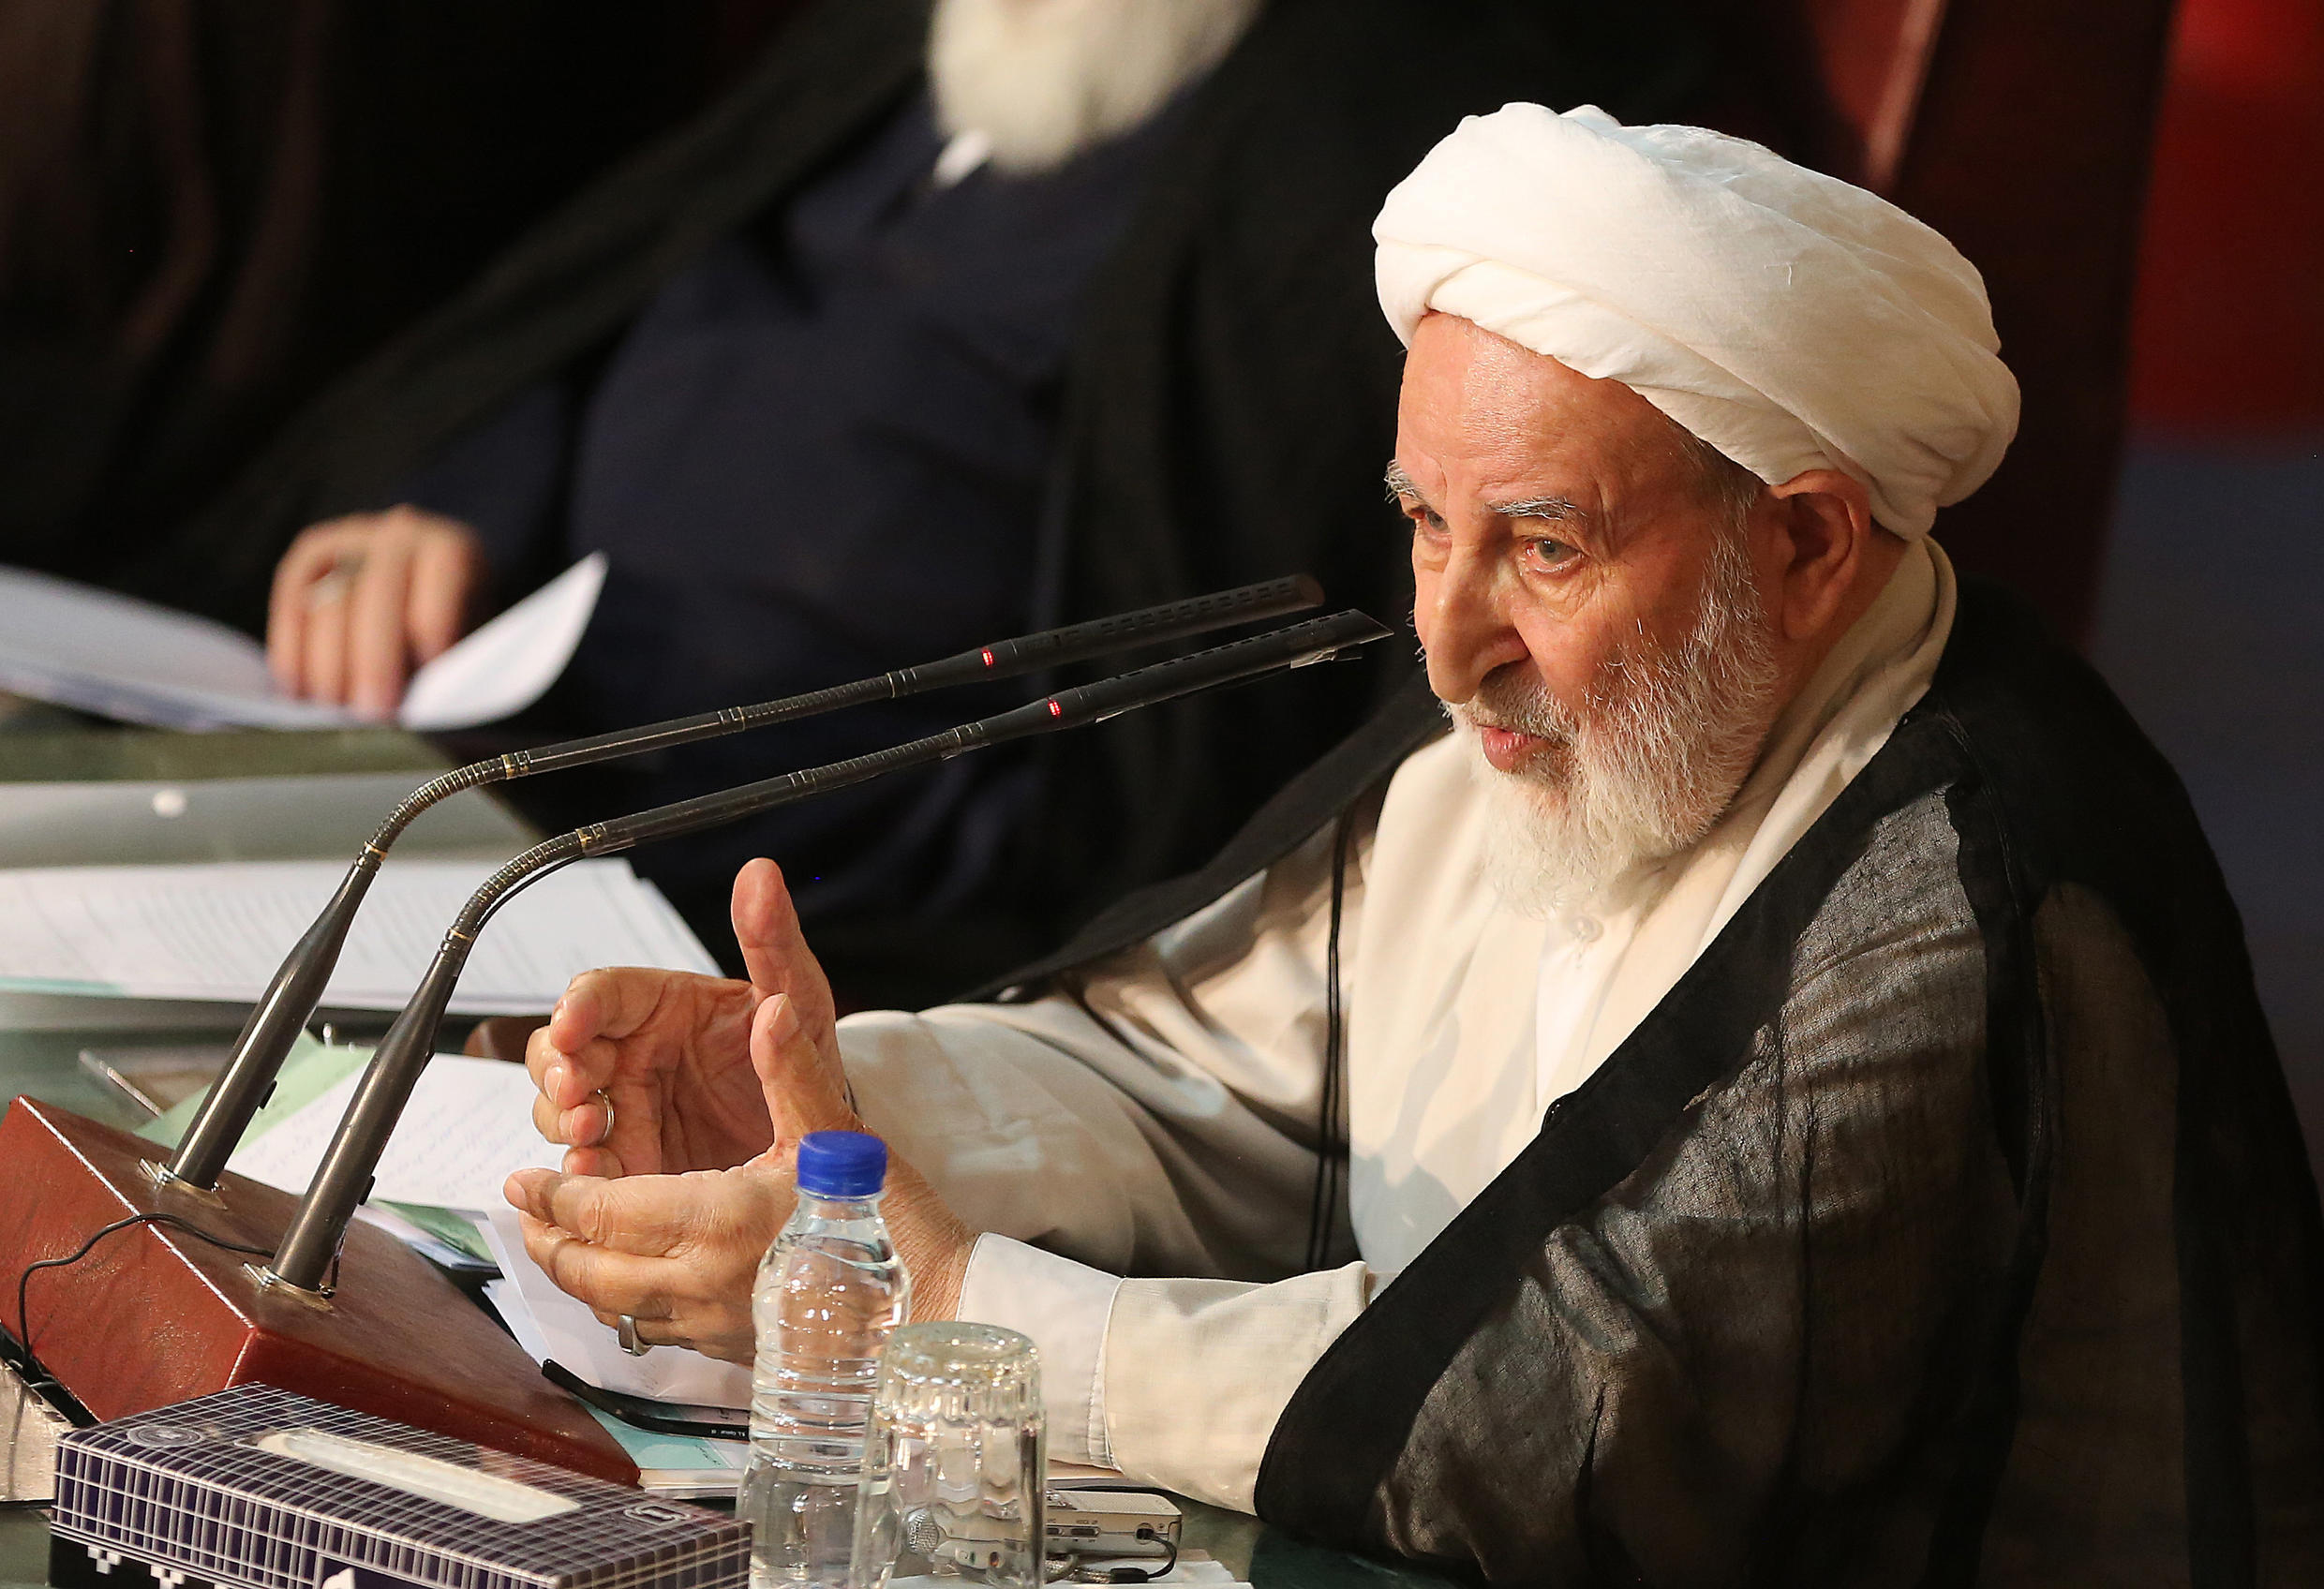 Yazdi served as the head of Iran's Assembly of Experts -- a body tasked with appointing the supreme leader -- in 2015